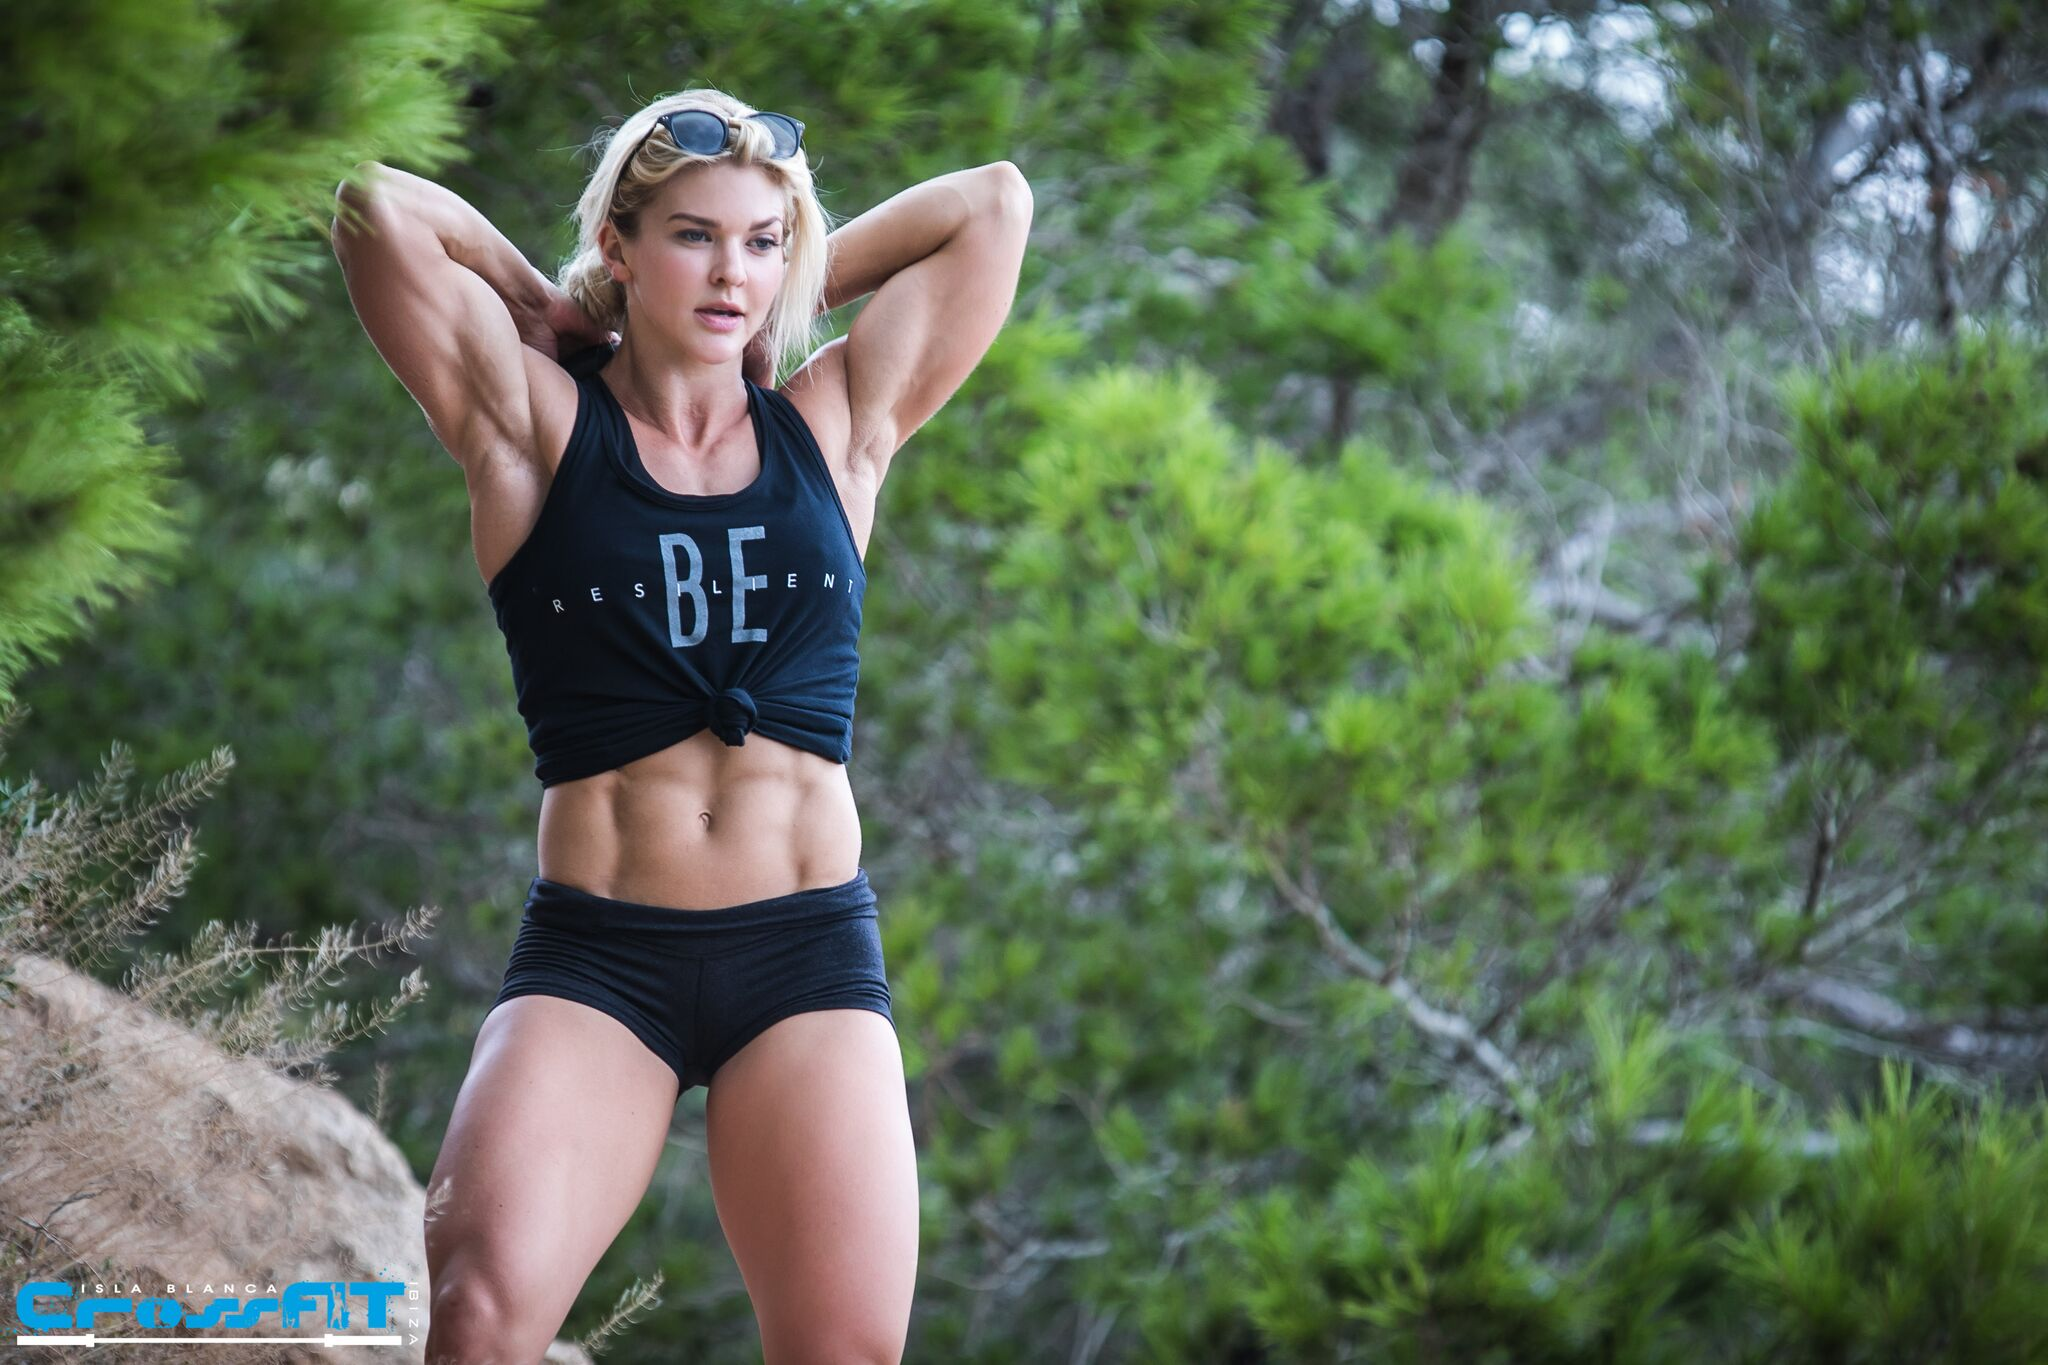 39 Hot Pictures Of Brooke Ence - Extremely Gorgeous Crossfit Lady With Majestic Booty To Die For